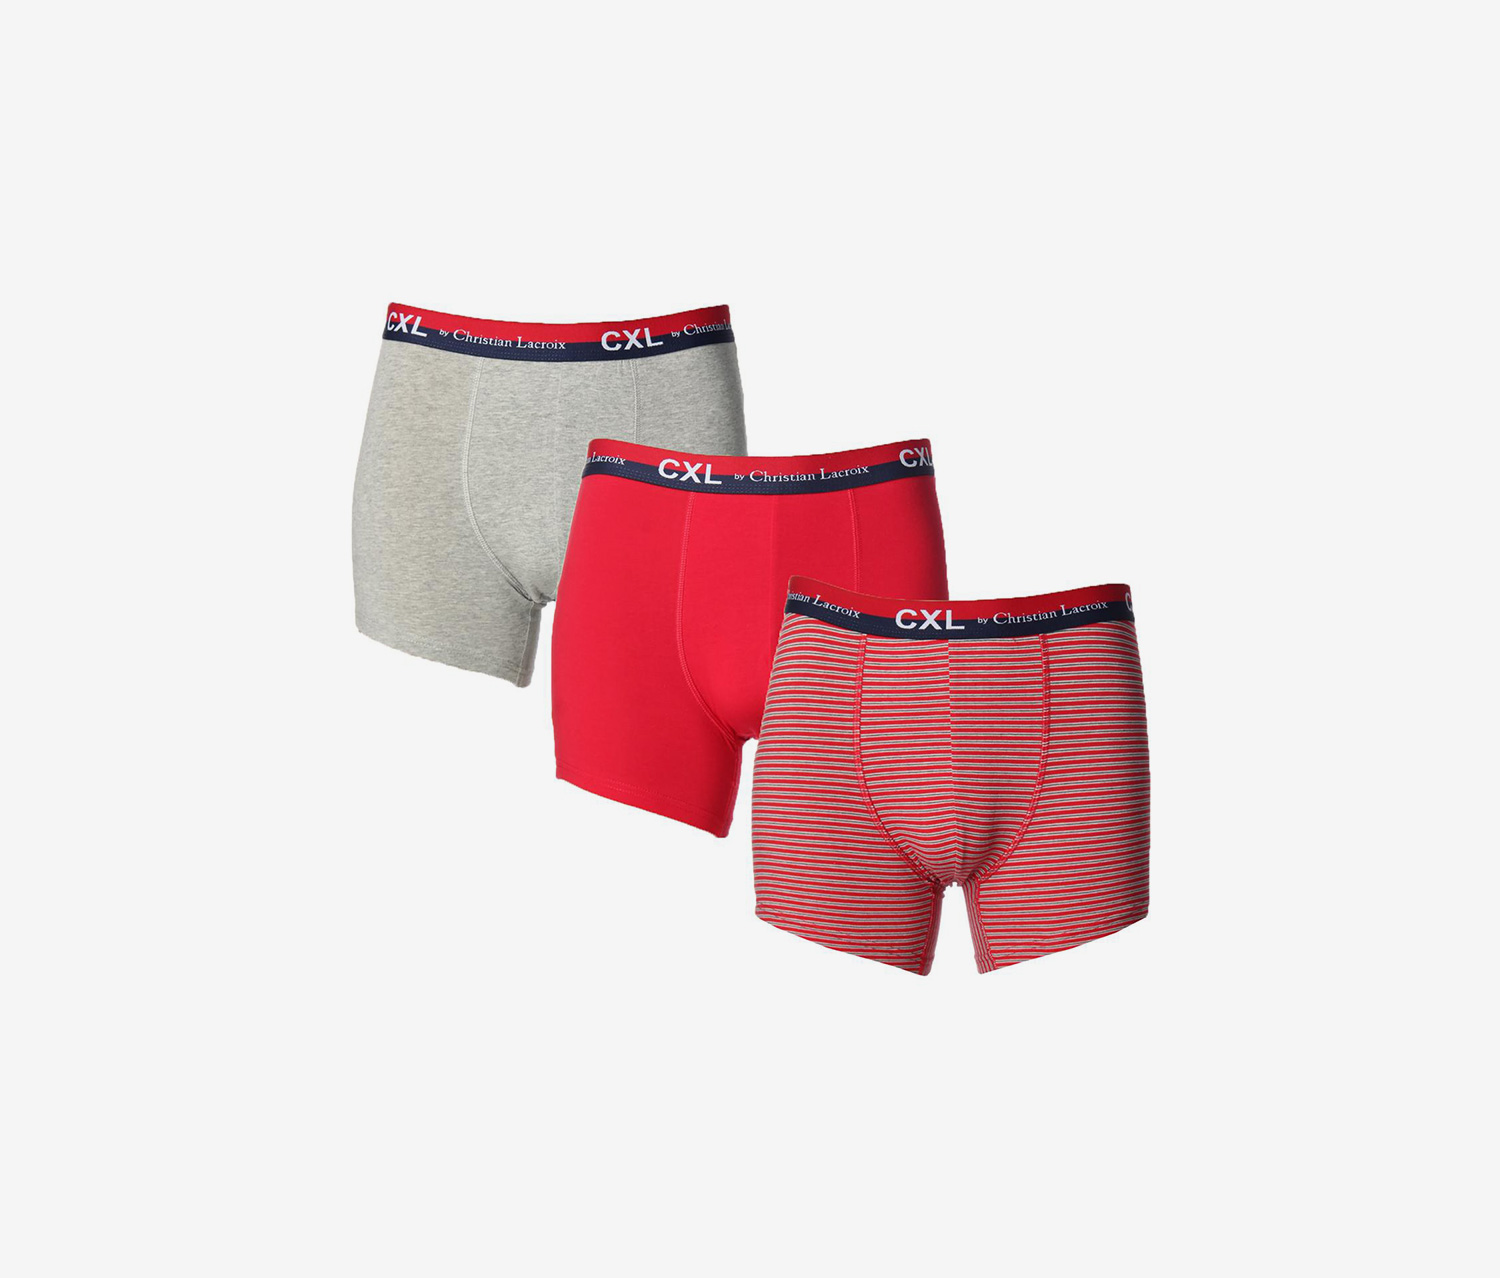 CXL by Christian Lacroix Mens Tagless Underwear Boxer Briefs, Grey/Red Combo